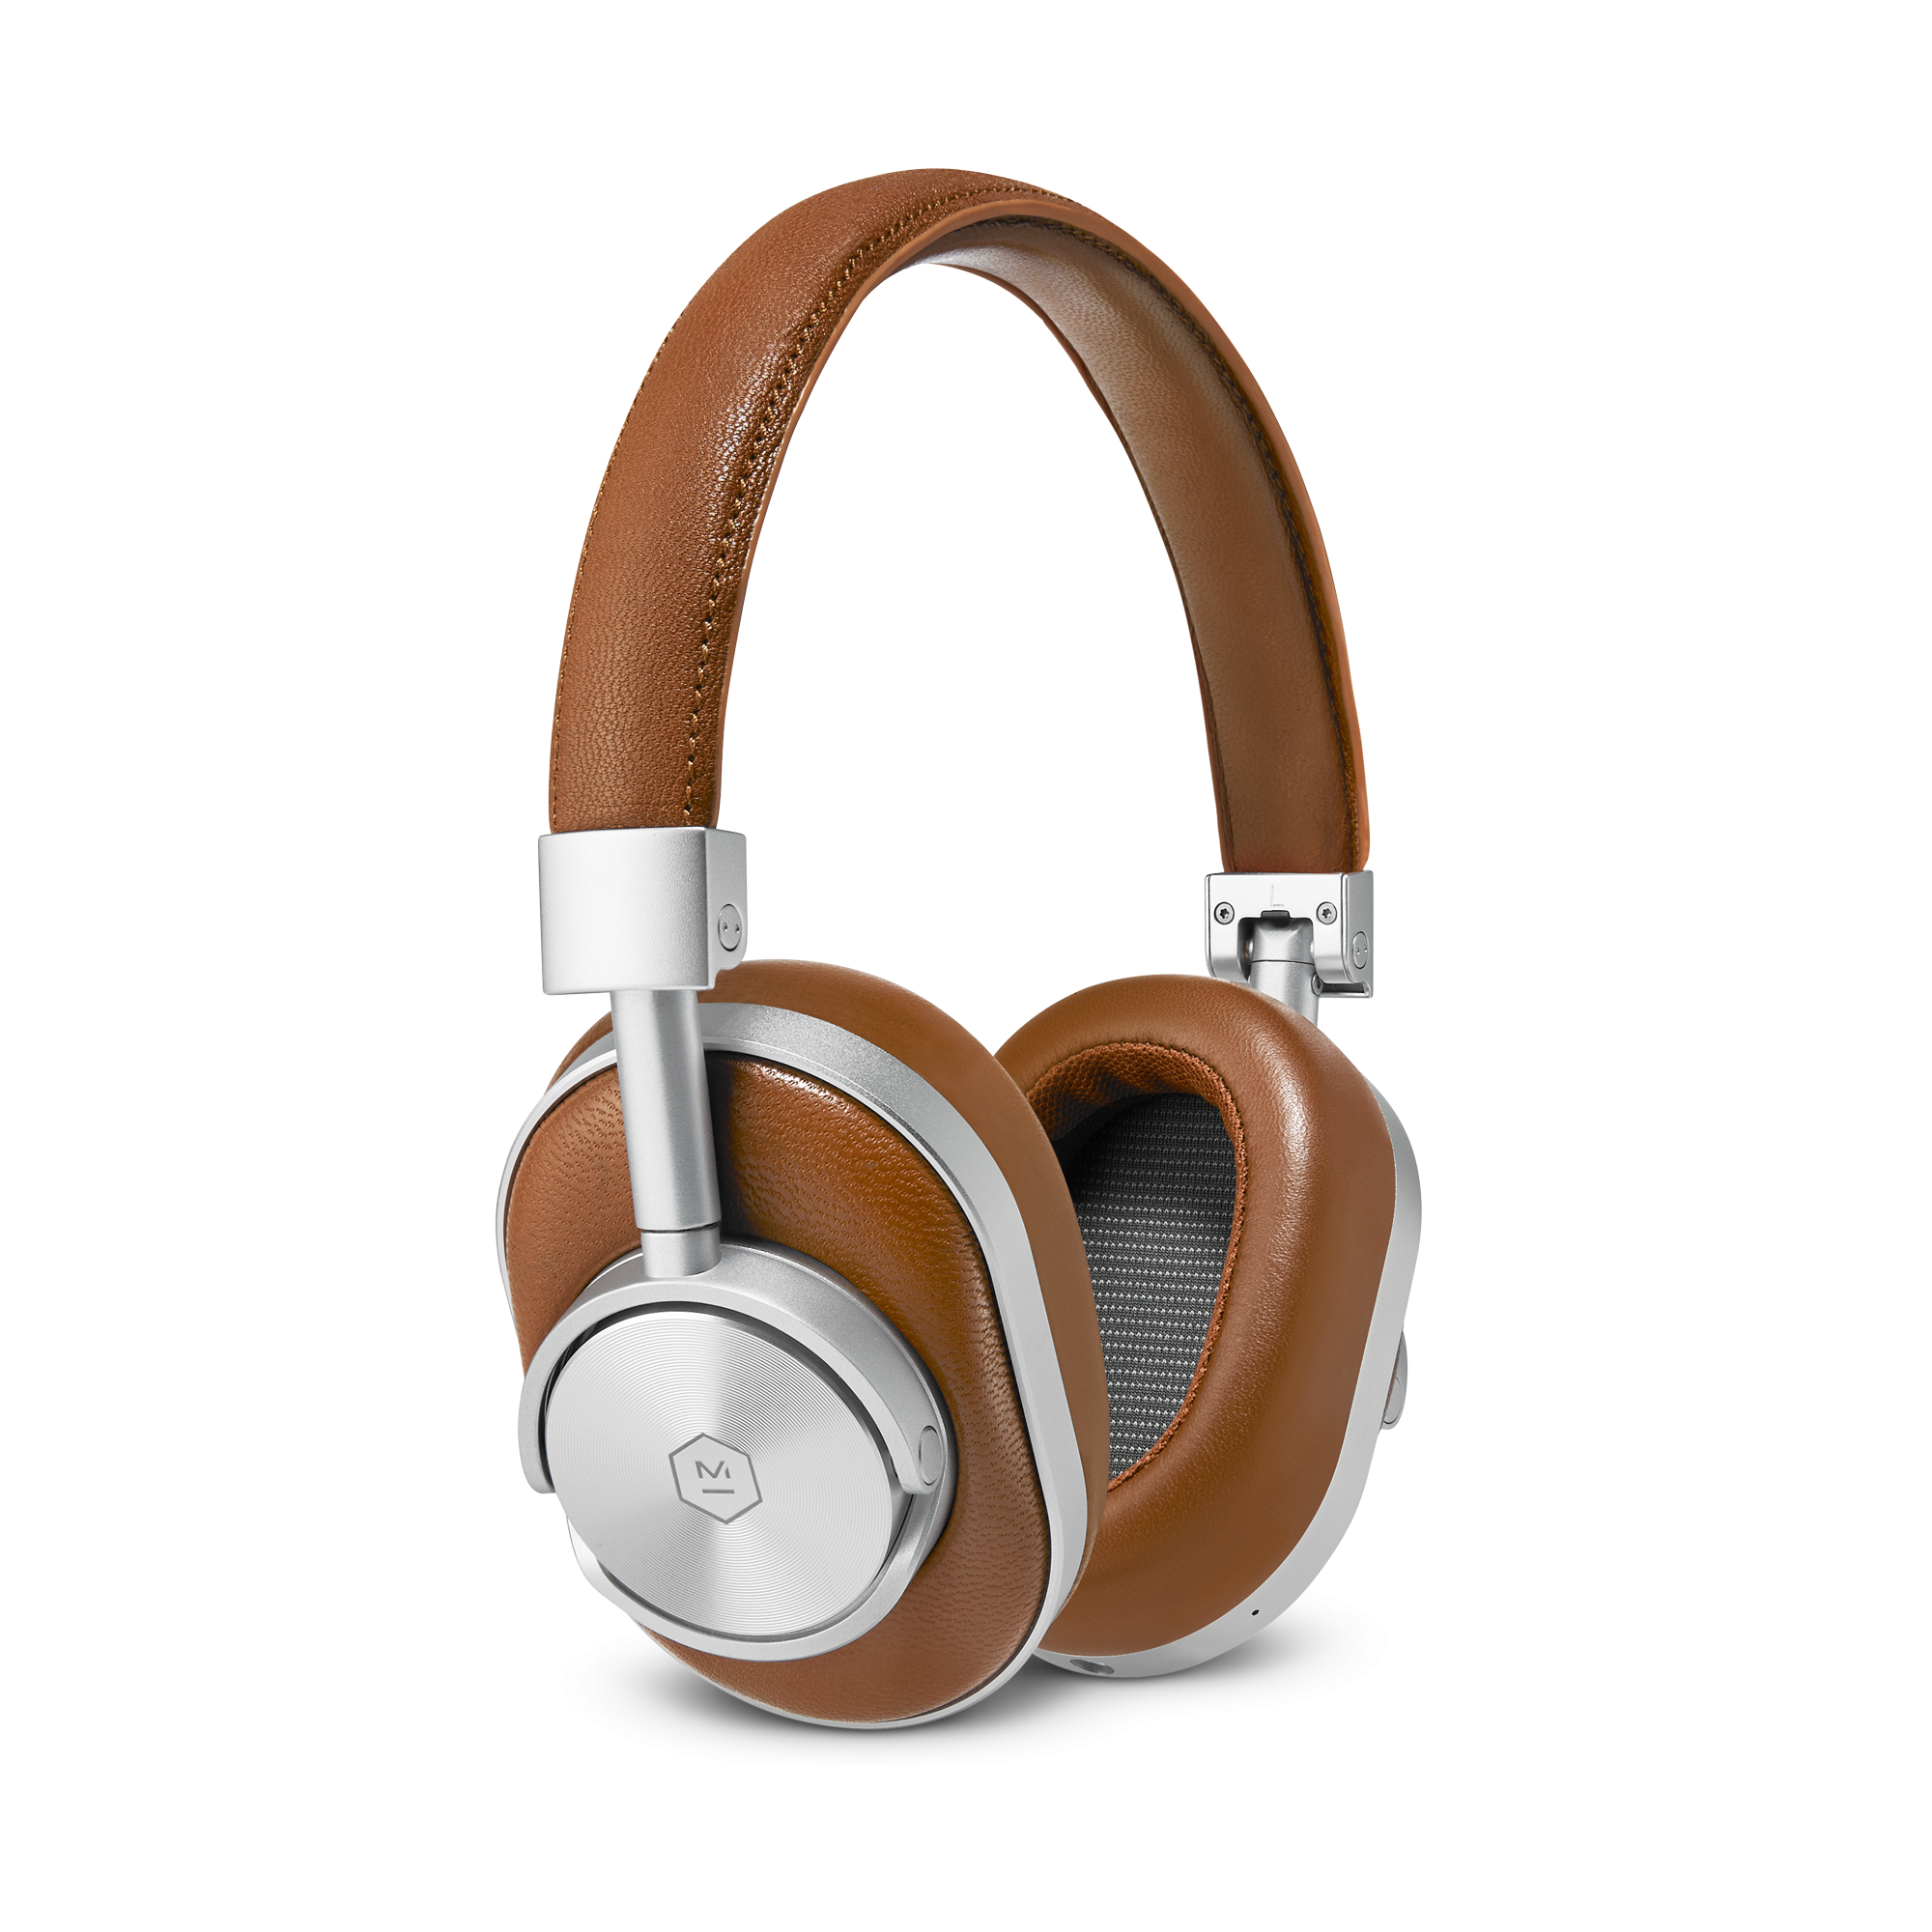 mw60-wireless-over-ear-headphones-brown-silver-1